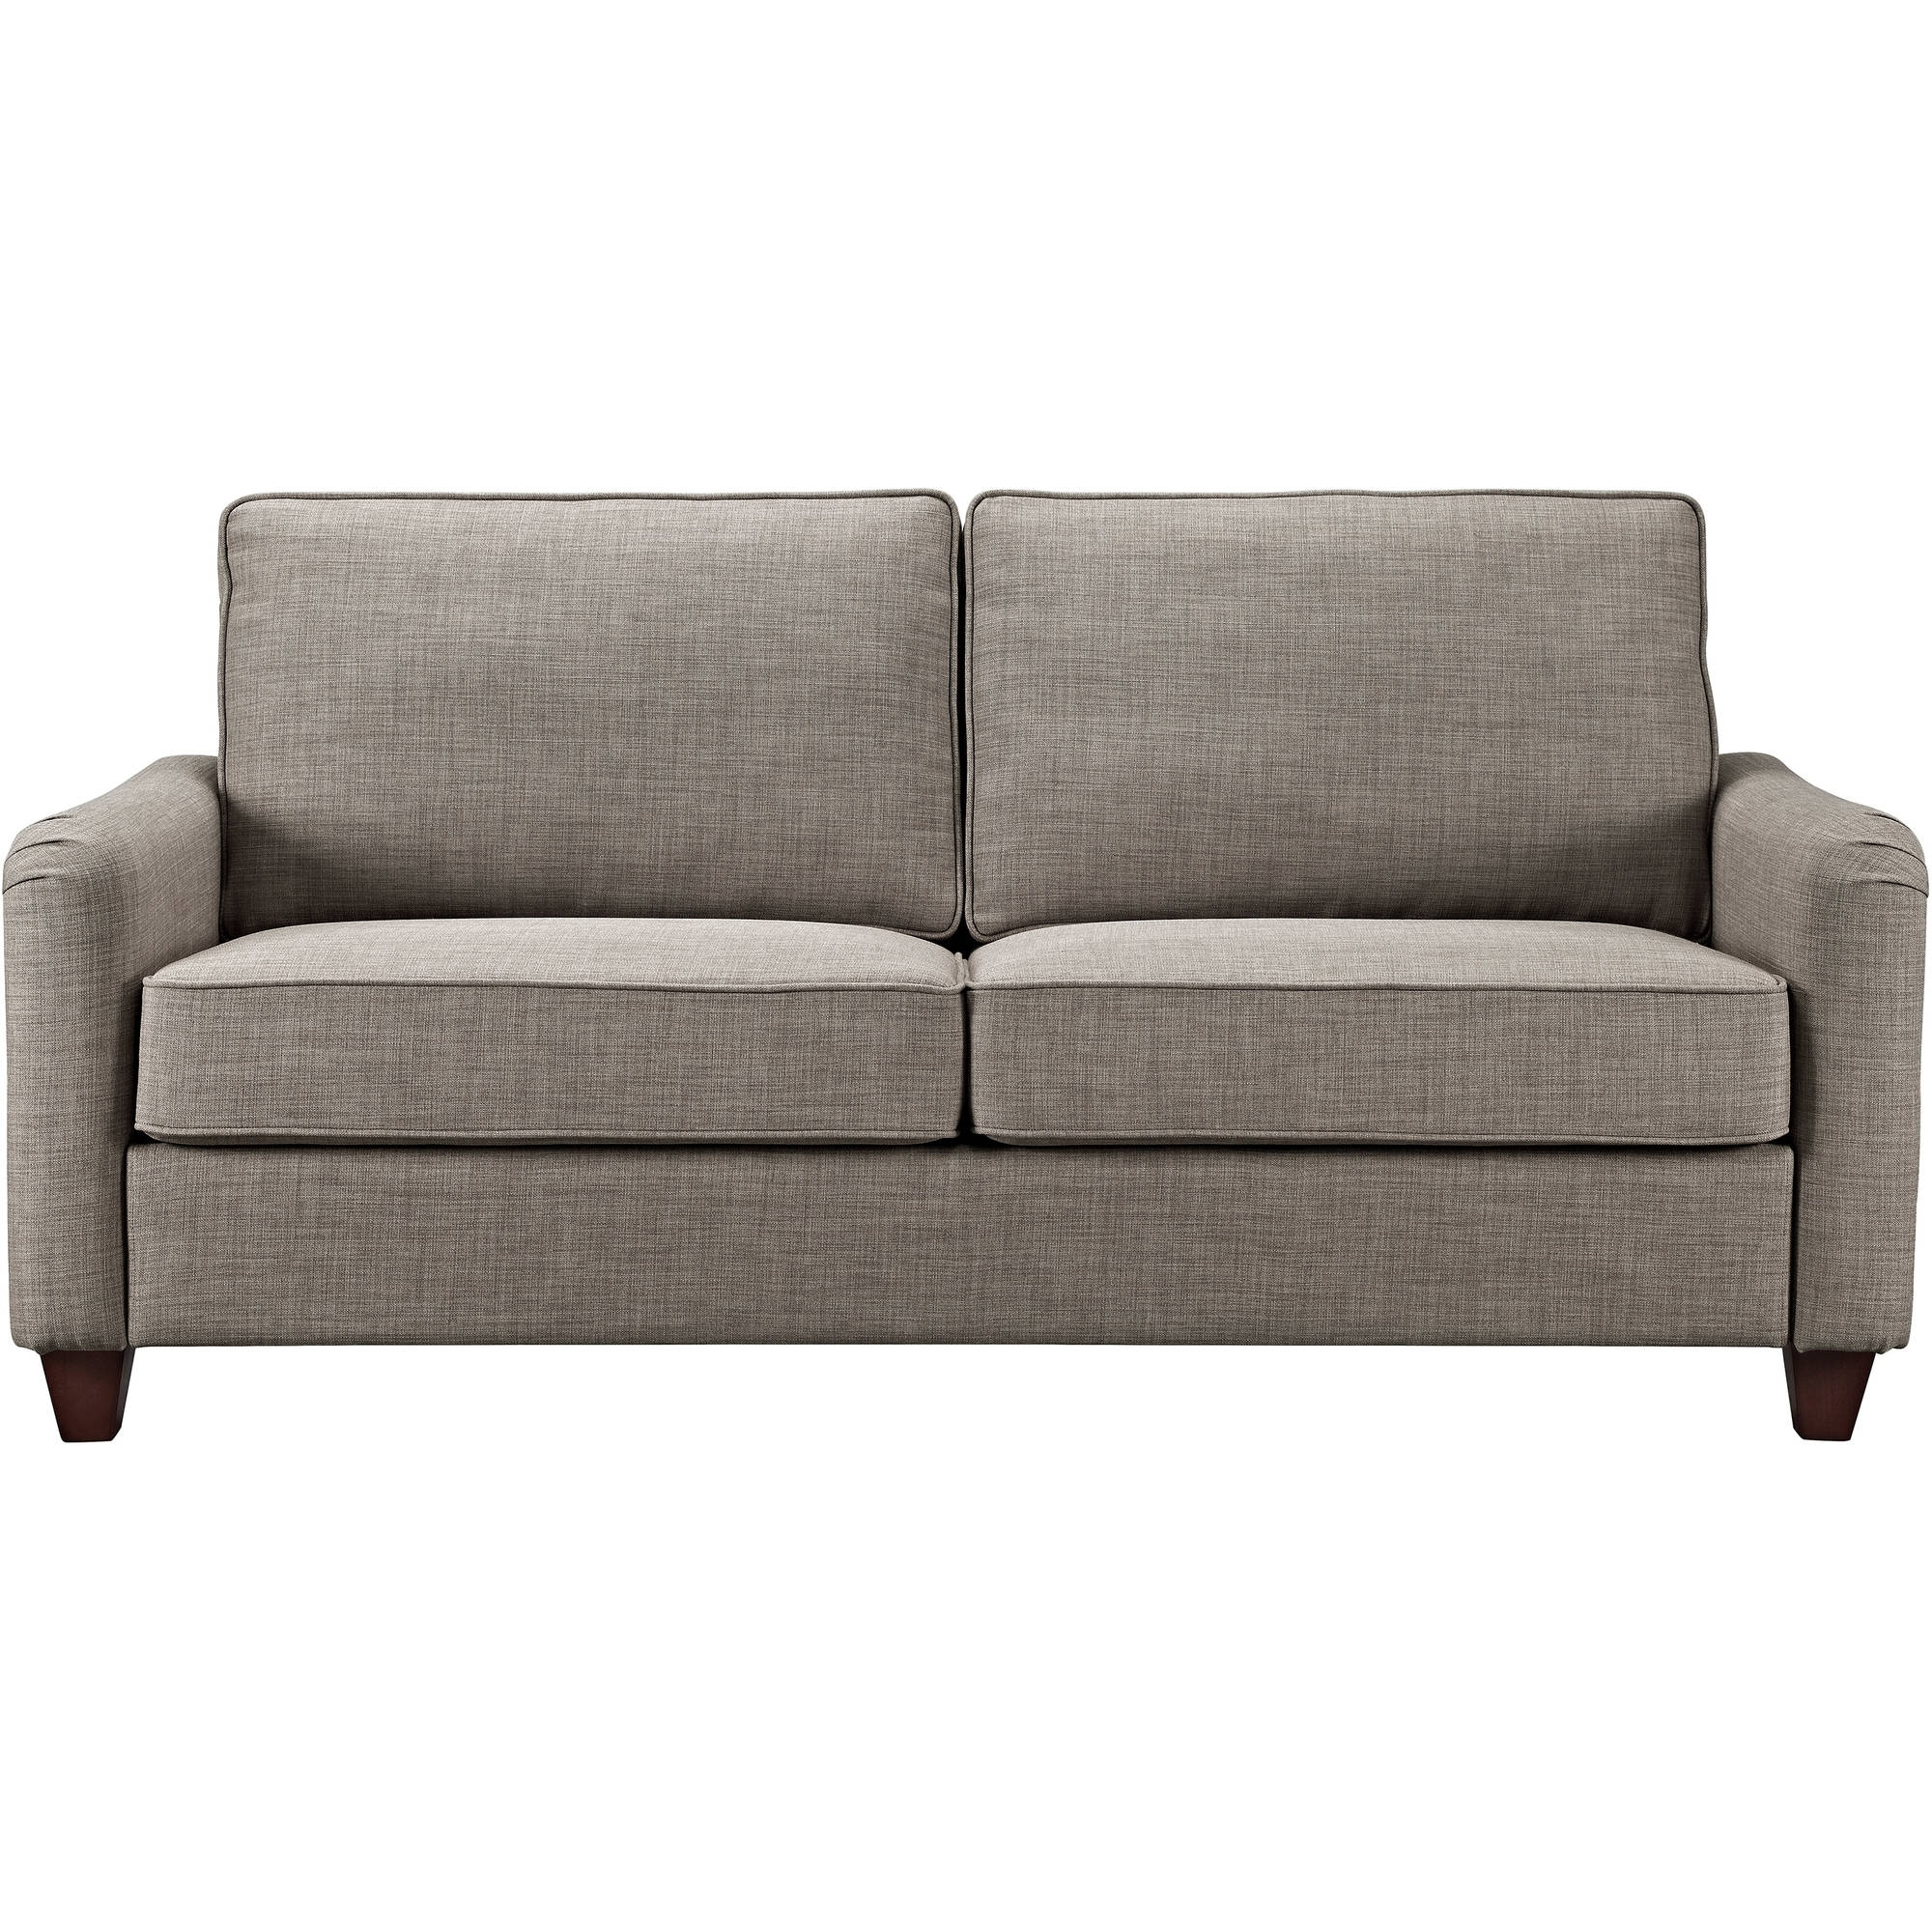 Most Popular Sectional Sofas At Barrie Regarding Sofas & Couches – Walmart (View 19 of 20)